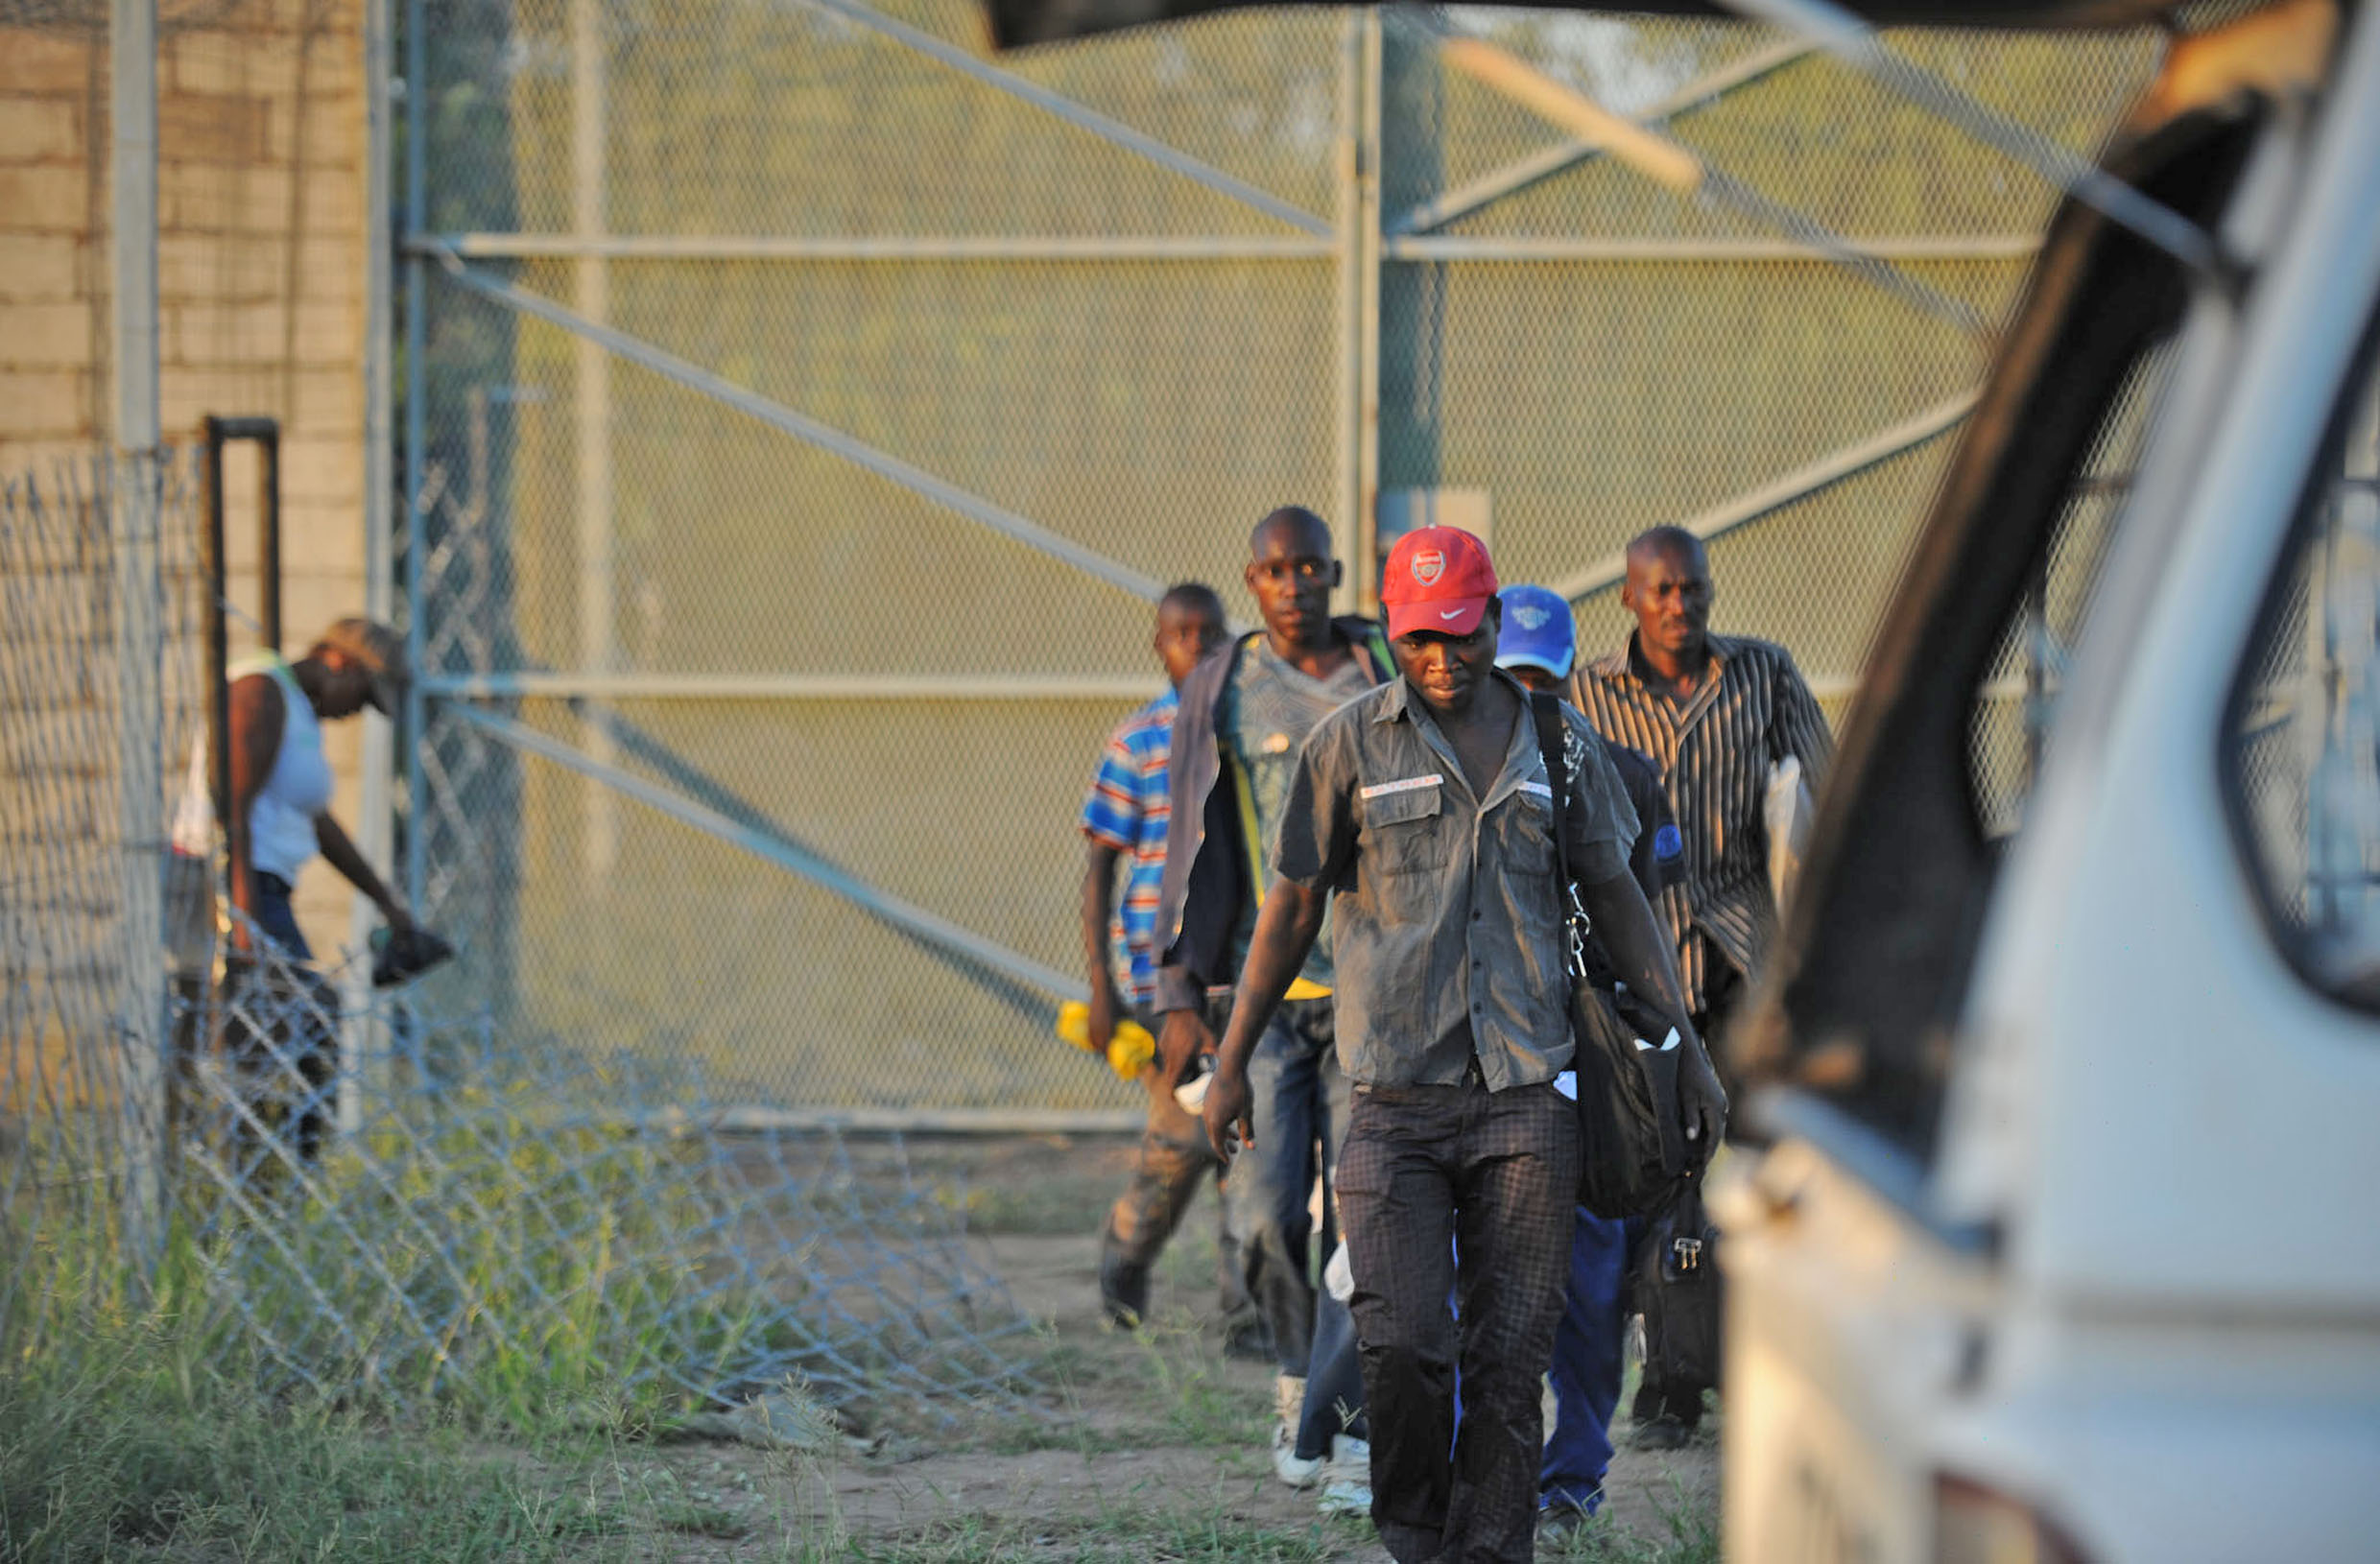 A group of illegal migrants find easy access through an open gate in the border fence between Zimbabwe and South Africa, about 25km west of the Beitbridge border post (Feb 2012)